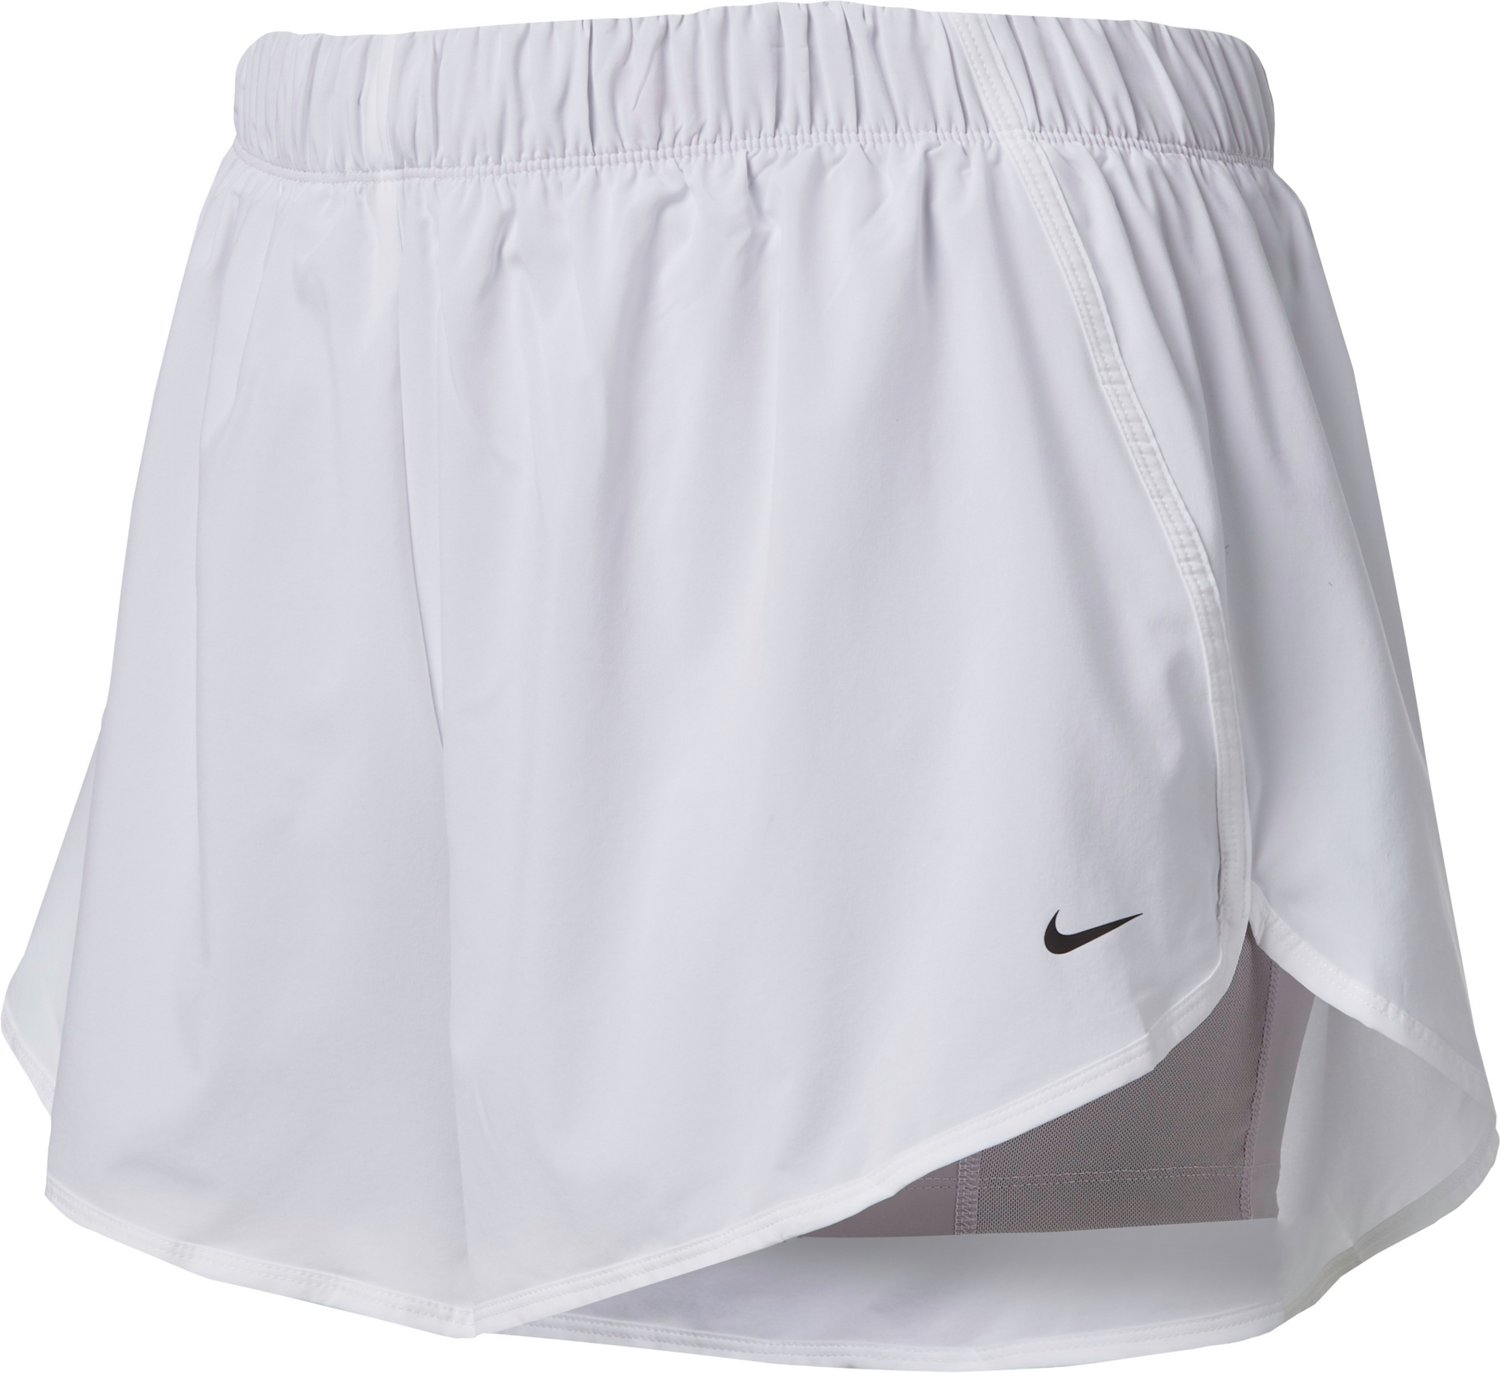 191ac34904 Nike Women's Flex 2-in-1 Woven Plus Size Training Shorts | Academy